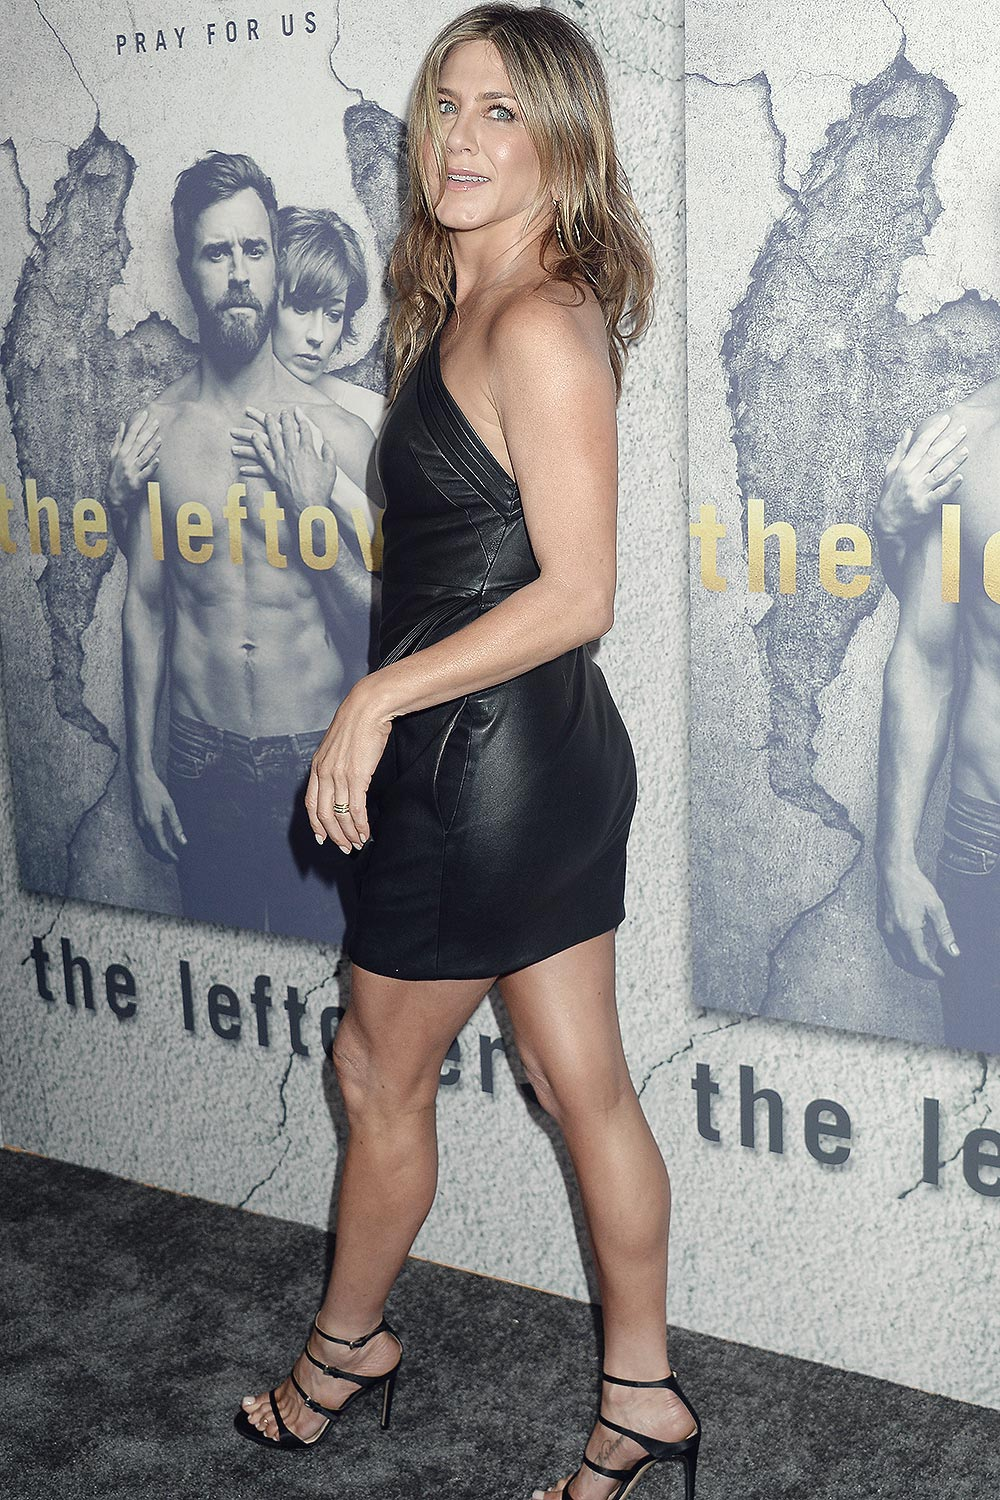 Jennifer Aniston attends The Leftovers Season 3 premiere